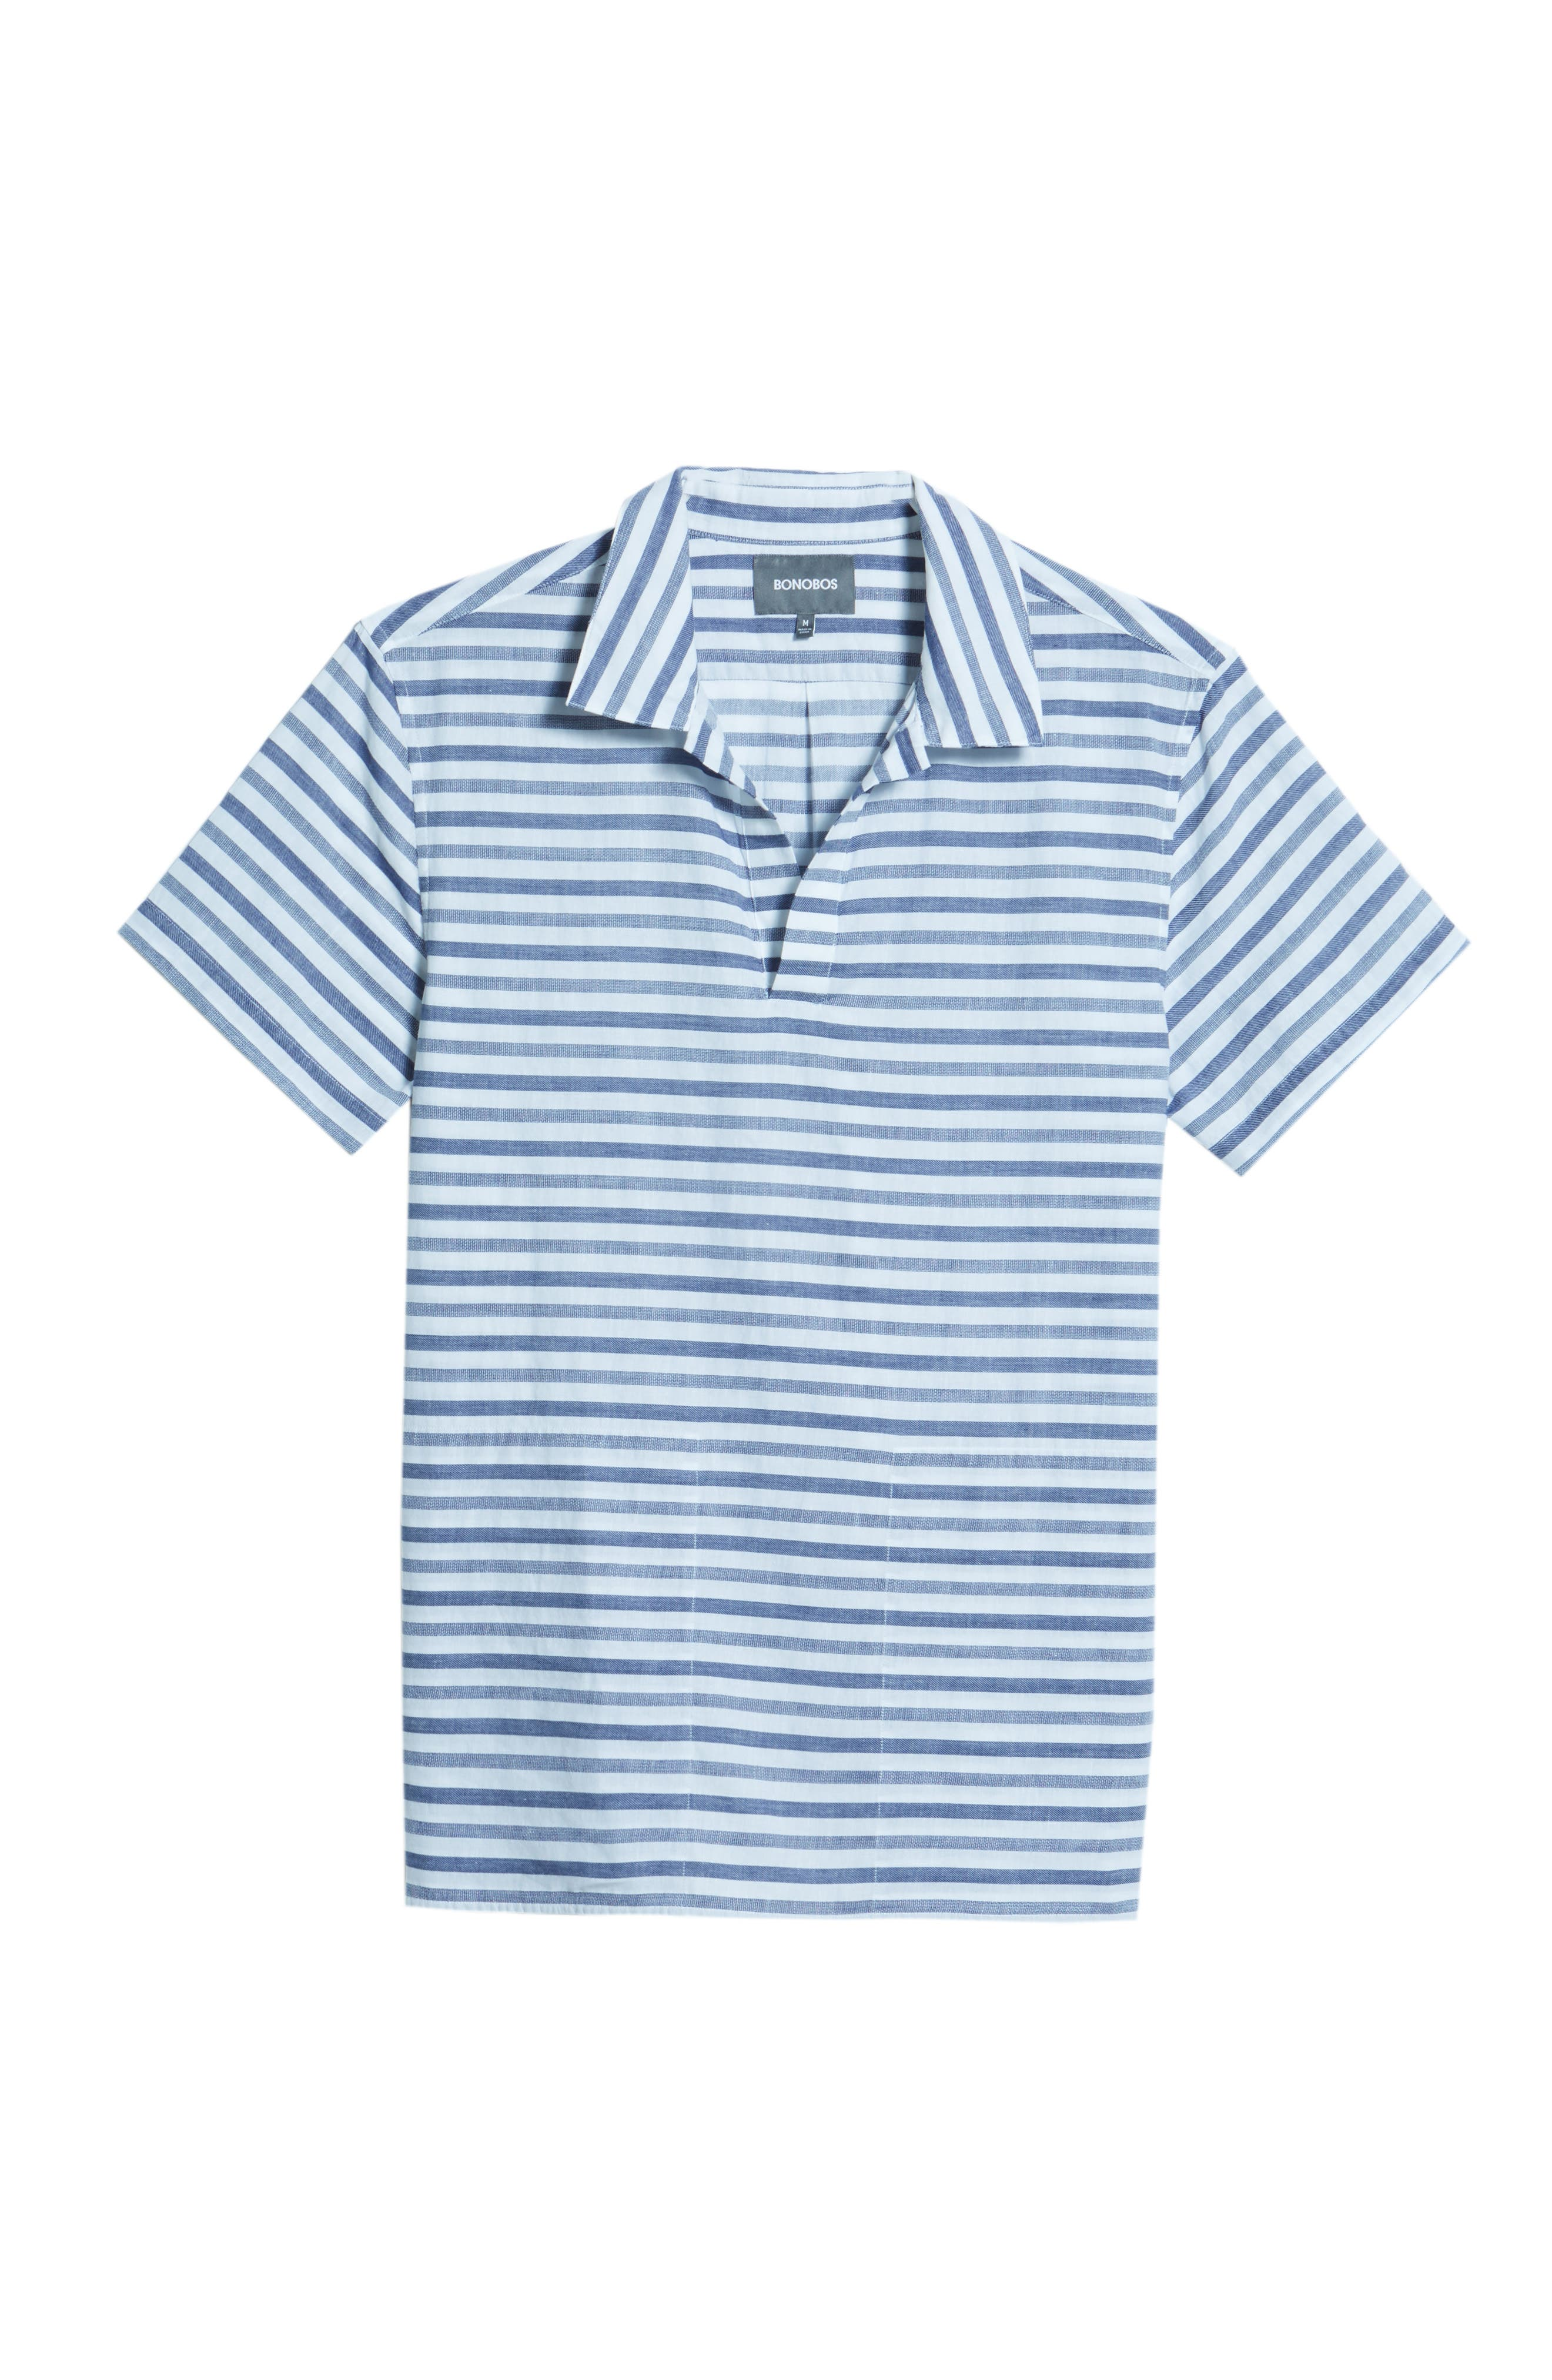 Beach Slim Fit Stripe Cotton & Linen Shirt,                             Alternate thumbnail 6, color,                             100